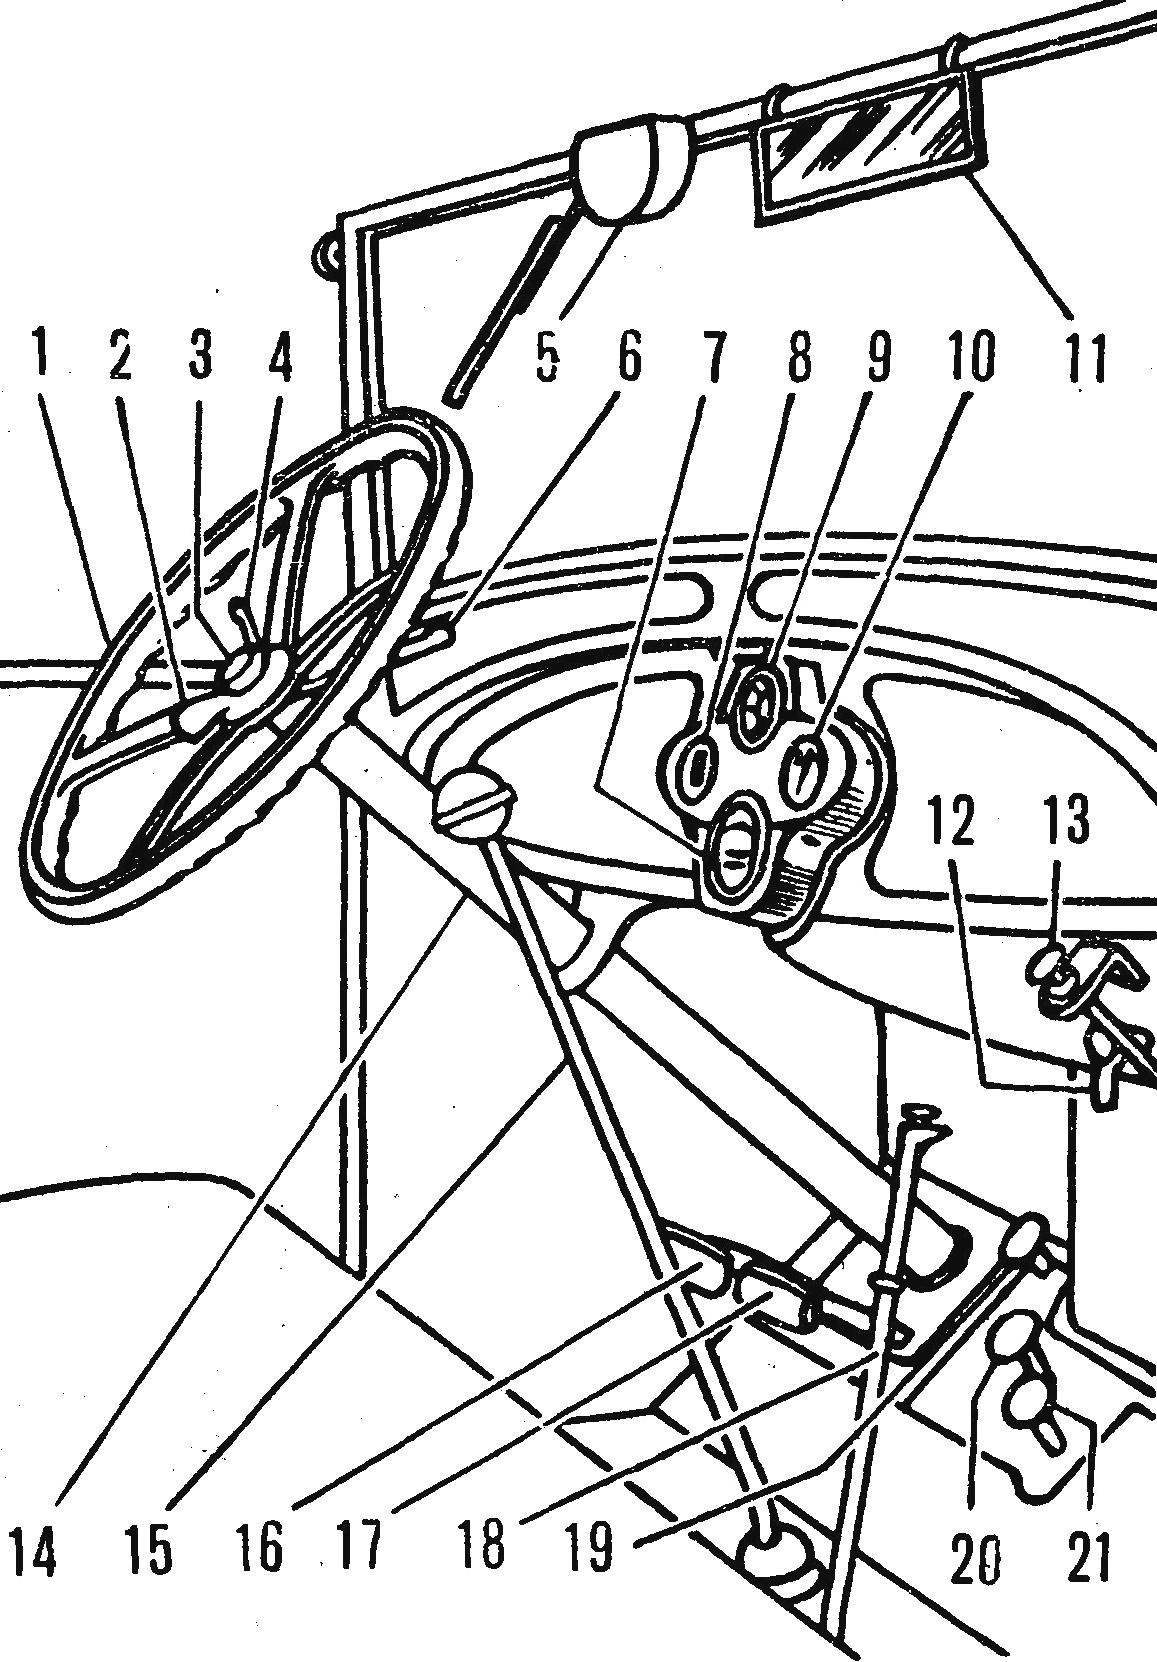 Fig. 2. Controls and instruments